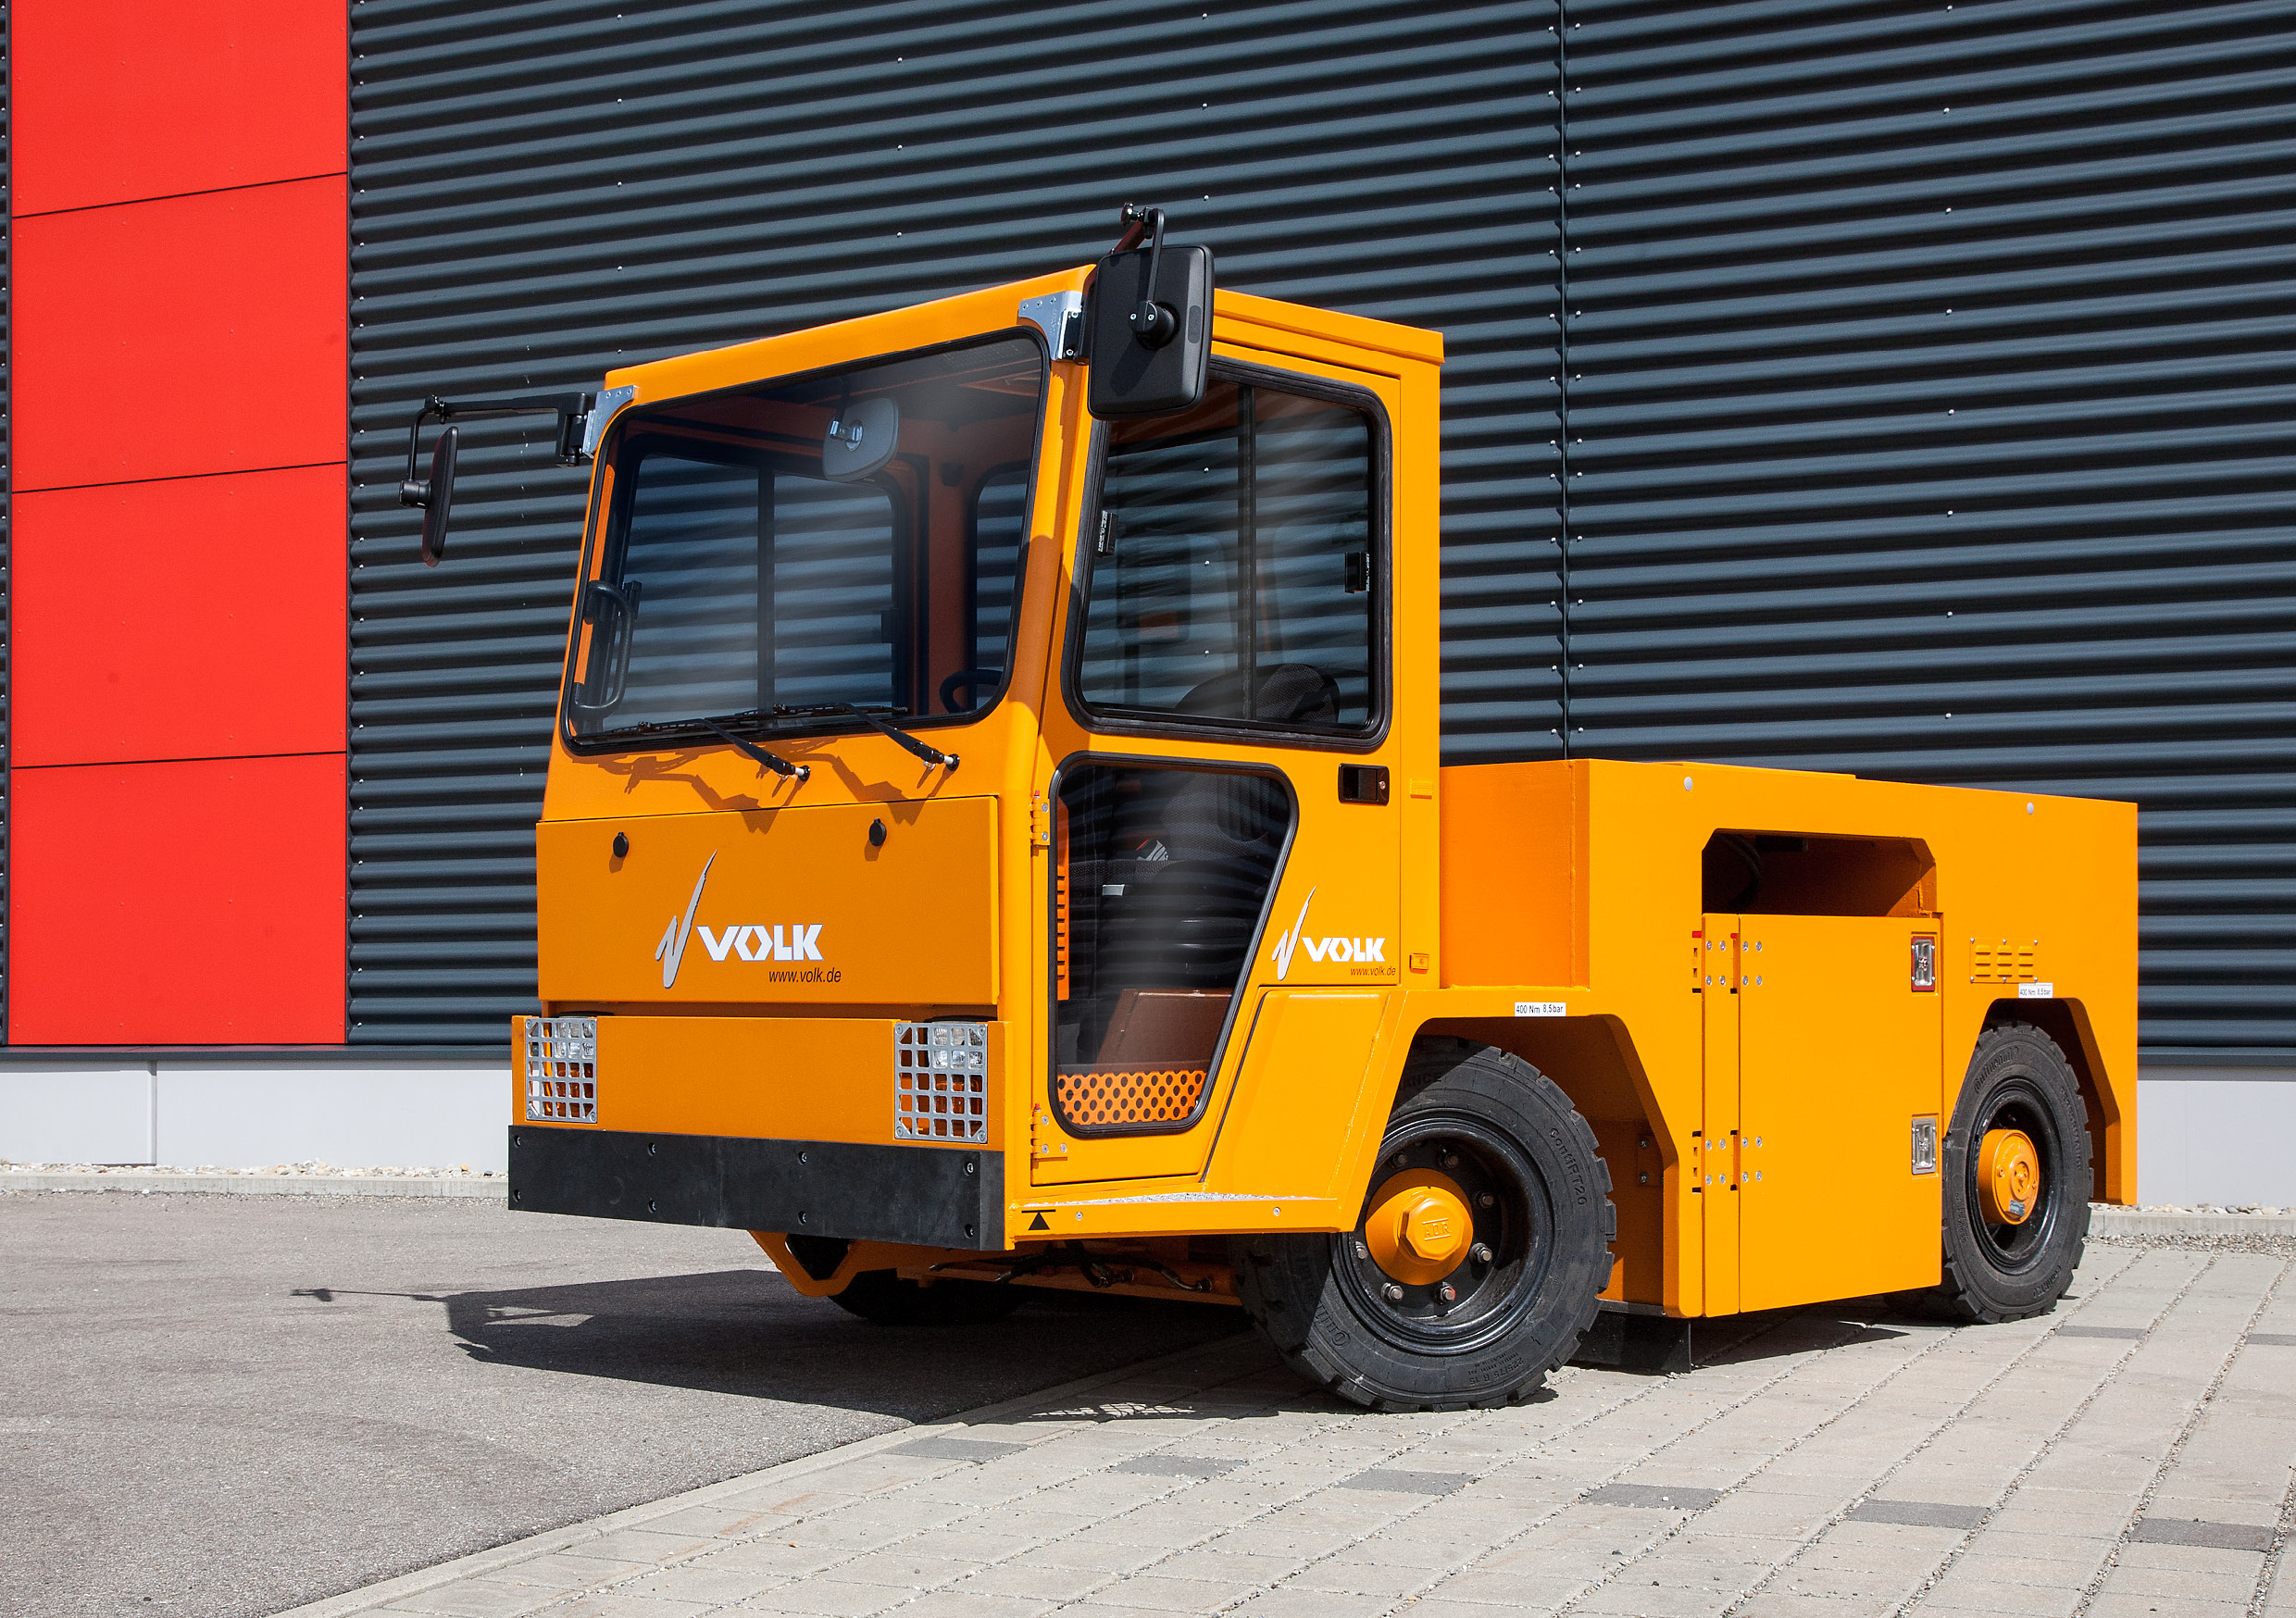 VOLK_Electric-tow-tractor_EFZ-100Nv2